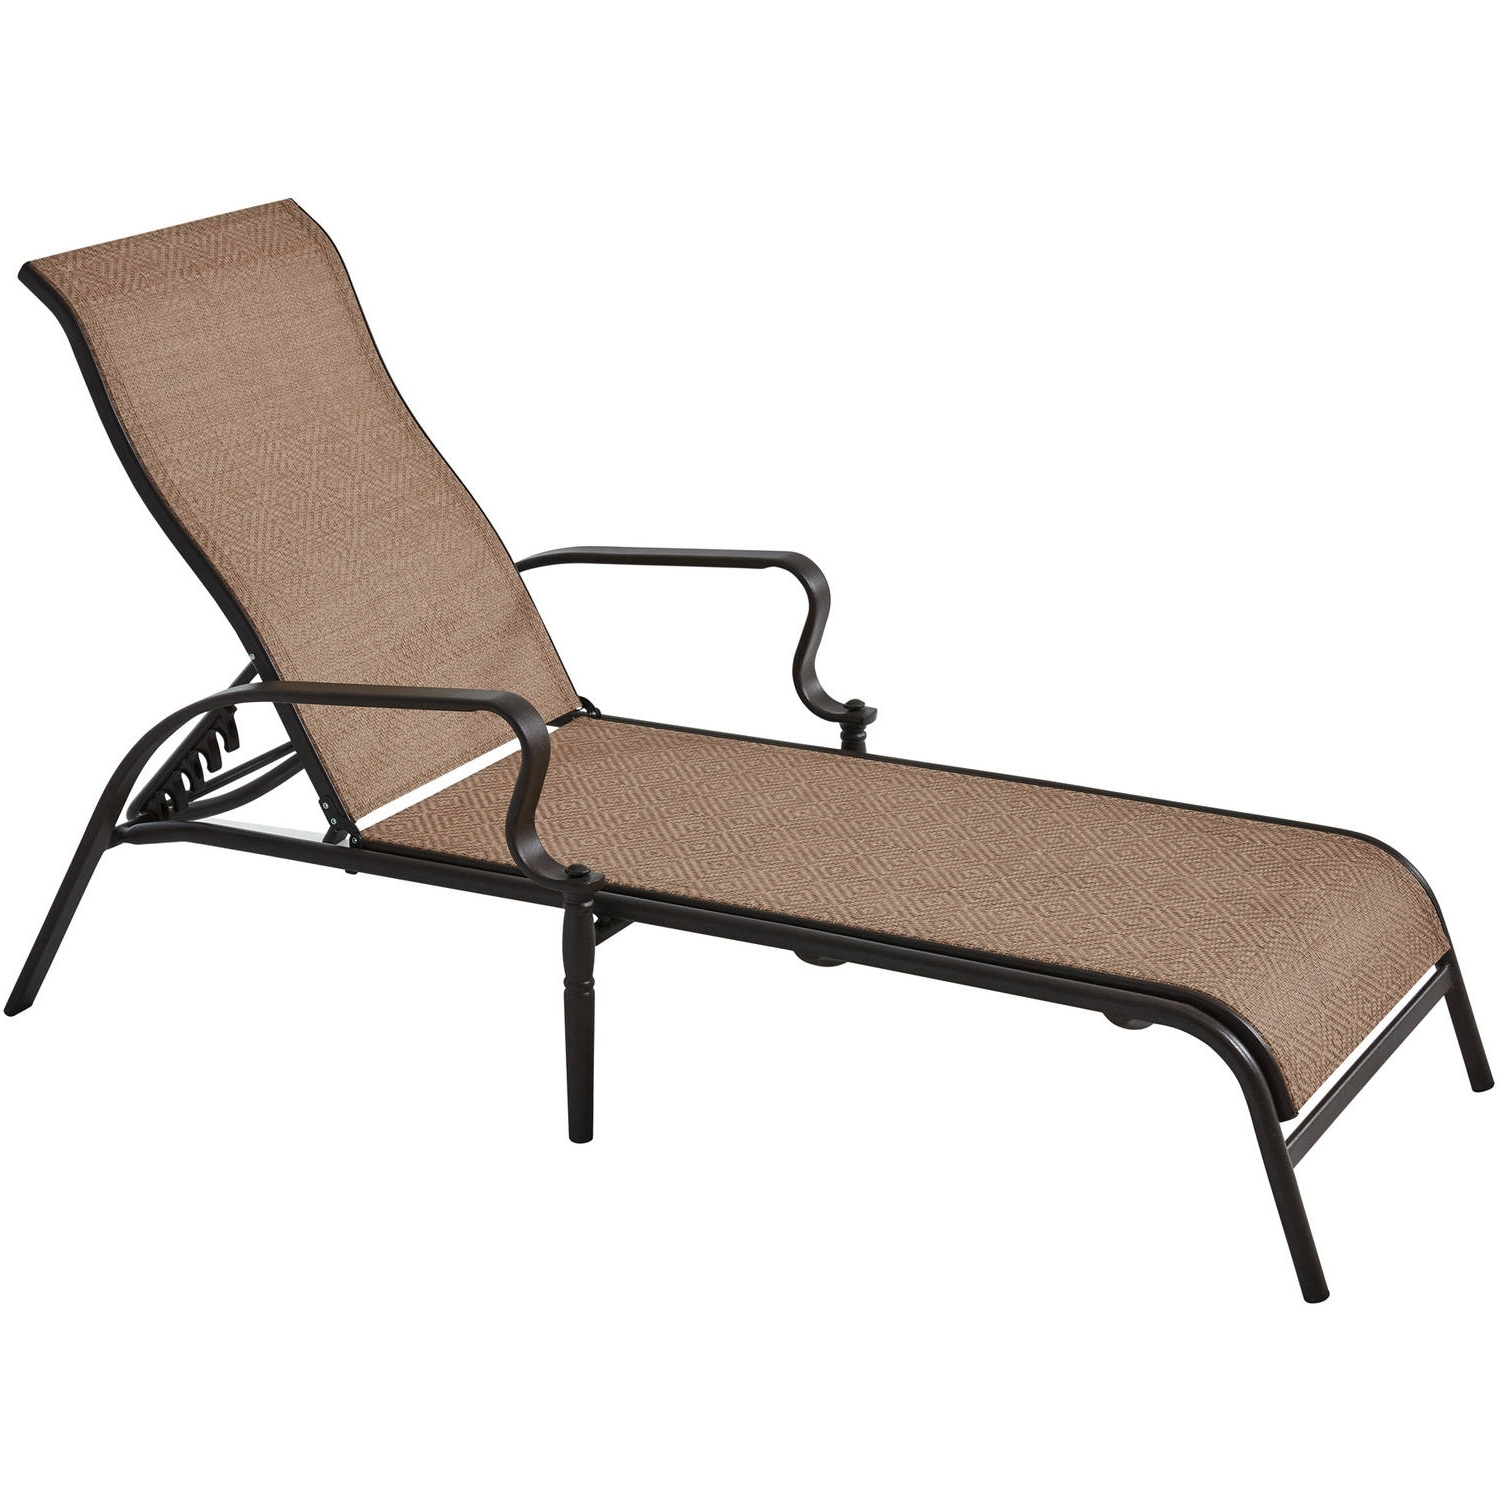 Chaise Lounge Chairs At Sears Inside 2017 Lounge Chair : Patio Chaise Lounge Sale Chaise Furniture Portable (View 5 of 15)